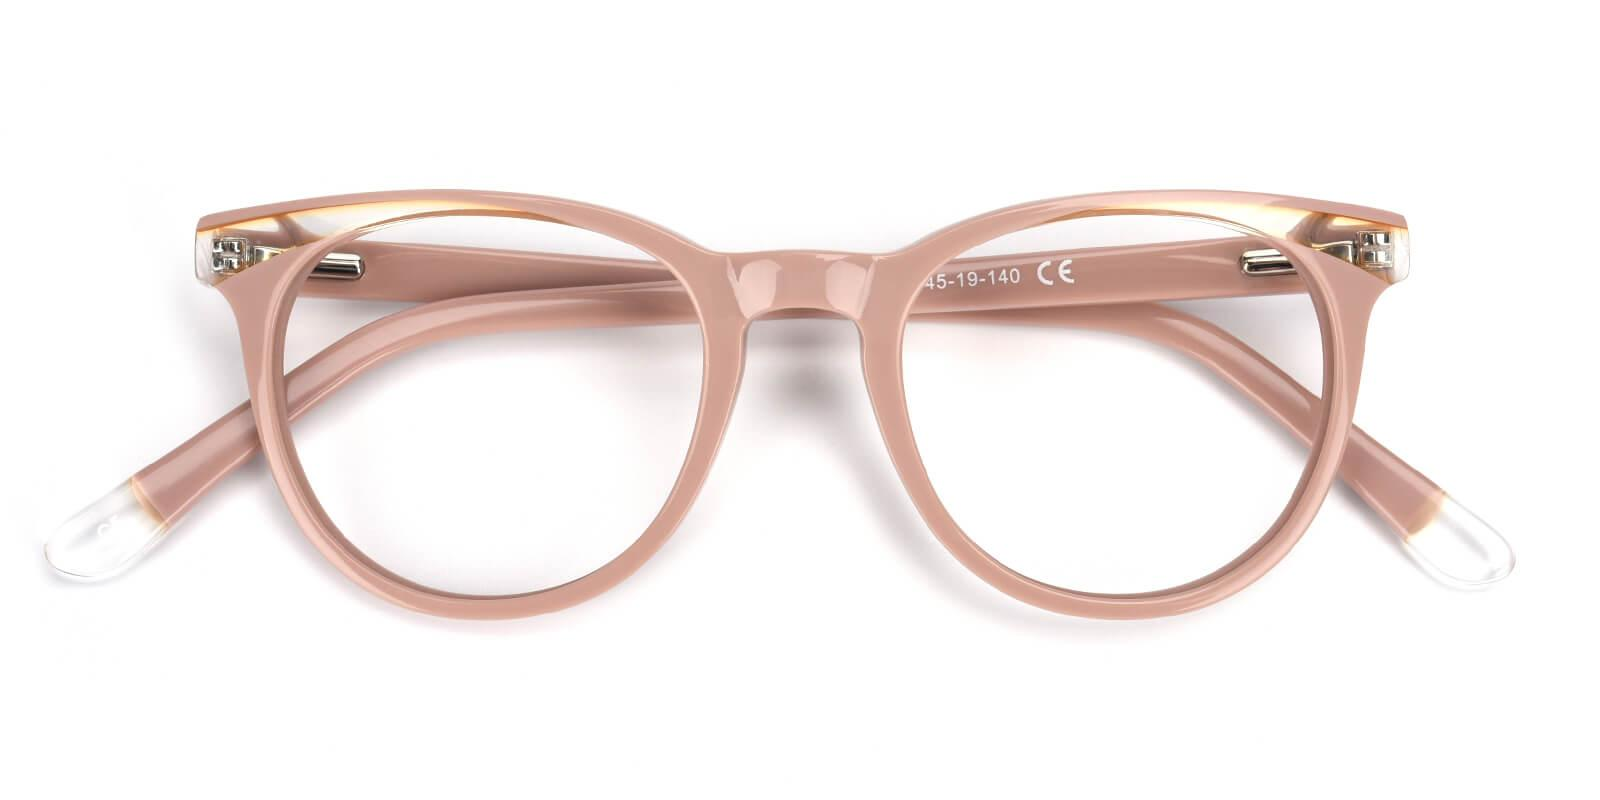 Clementine-Cream-Oval / Cat-Acetate-Eyeglasses-detail